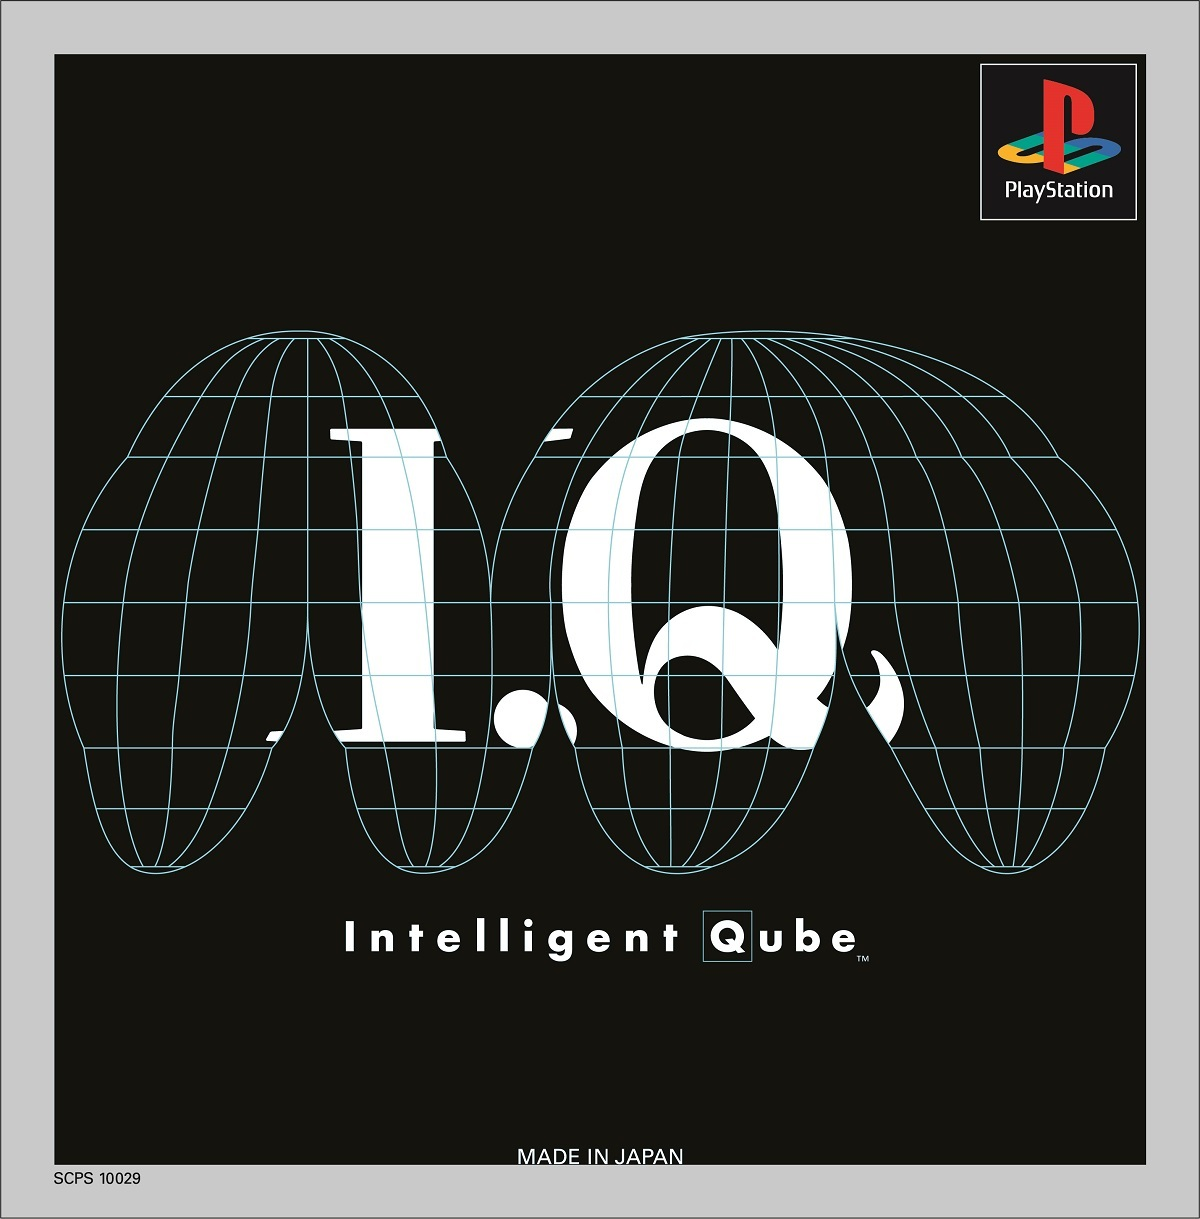 PlayStationゲーム「I.Q Intelligent Qube」 1997 ©Sony Computer Entertainment Inc.